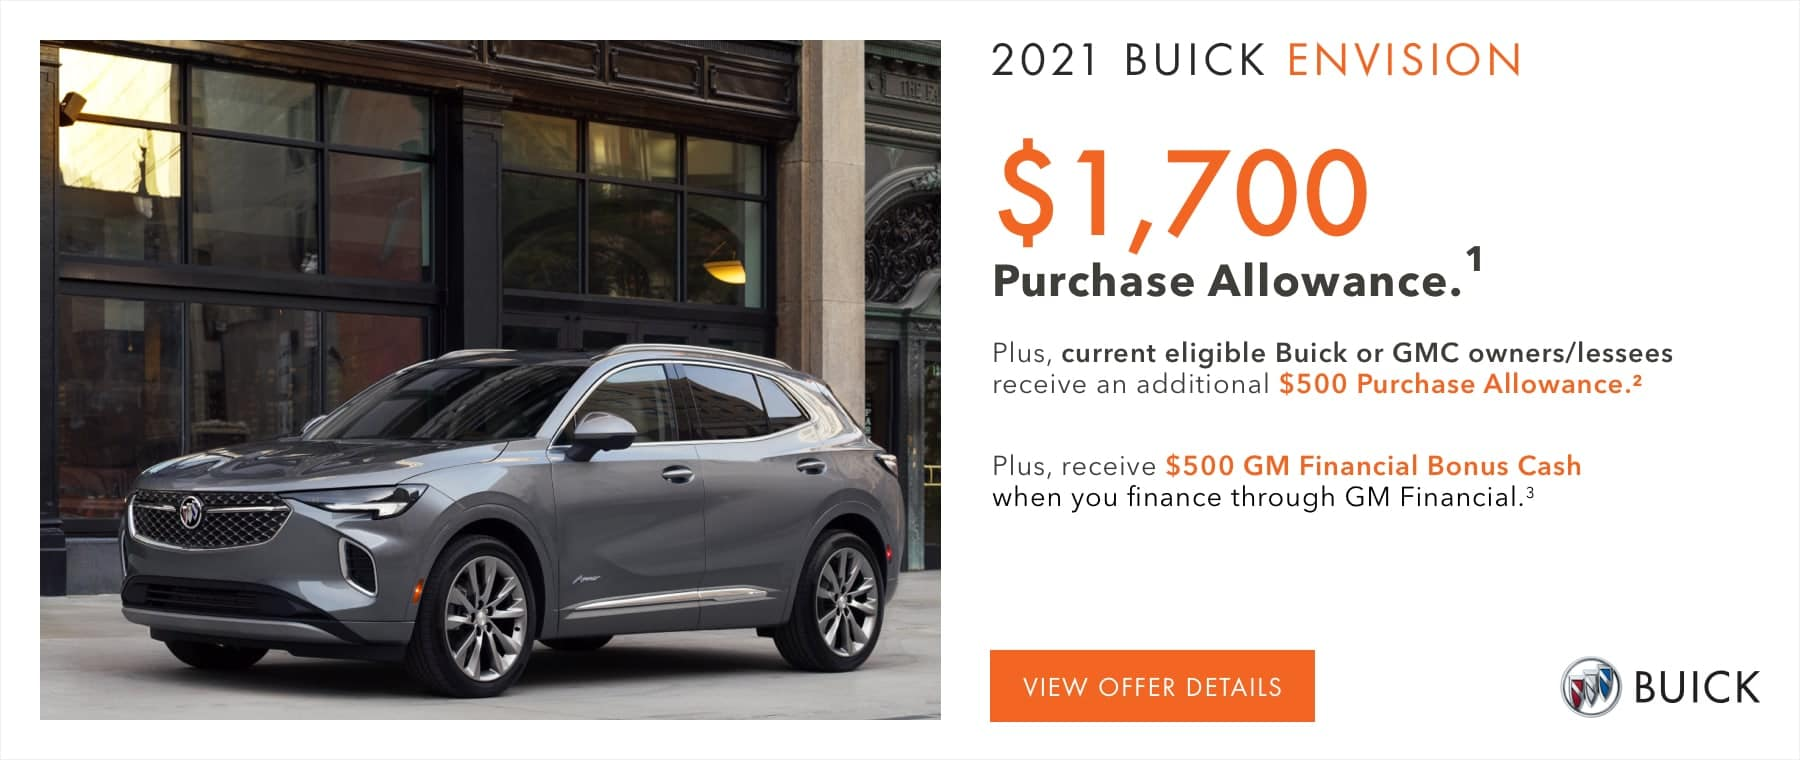 $1,700 Purchase Allowance.1 Plus, current eligible Buick or GMC owners/lessees receive an additional $500 Purchase Allowance.2 Plus, receive $500 GM Financial Bonus Cash when you finance through GM Financial.3